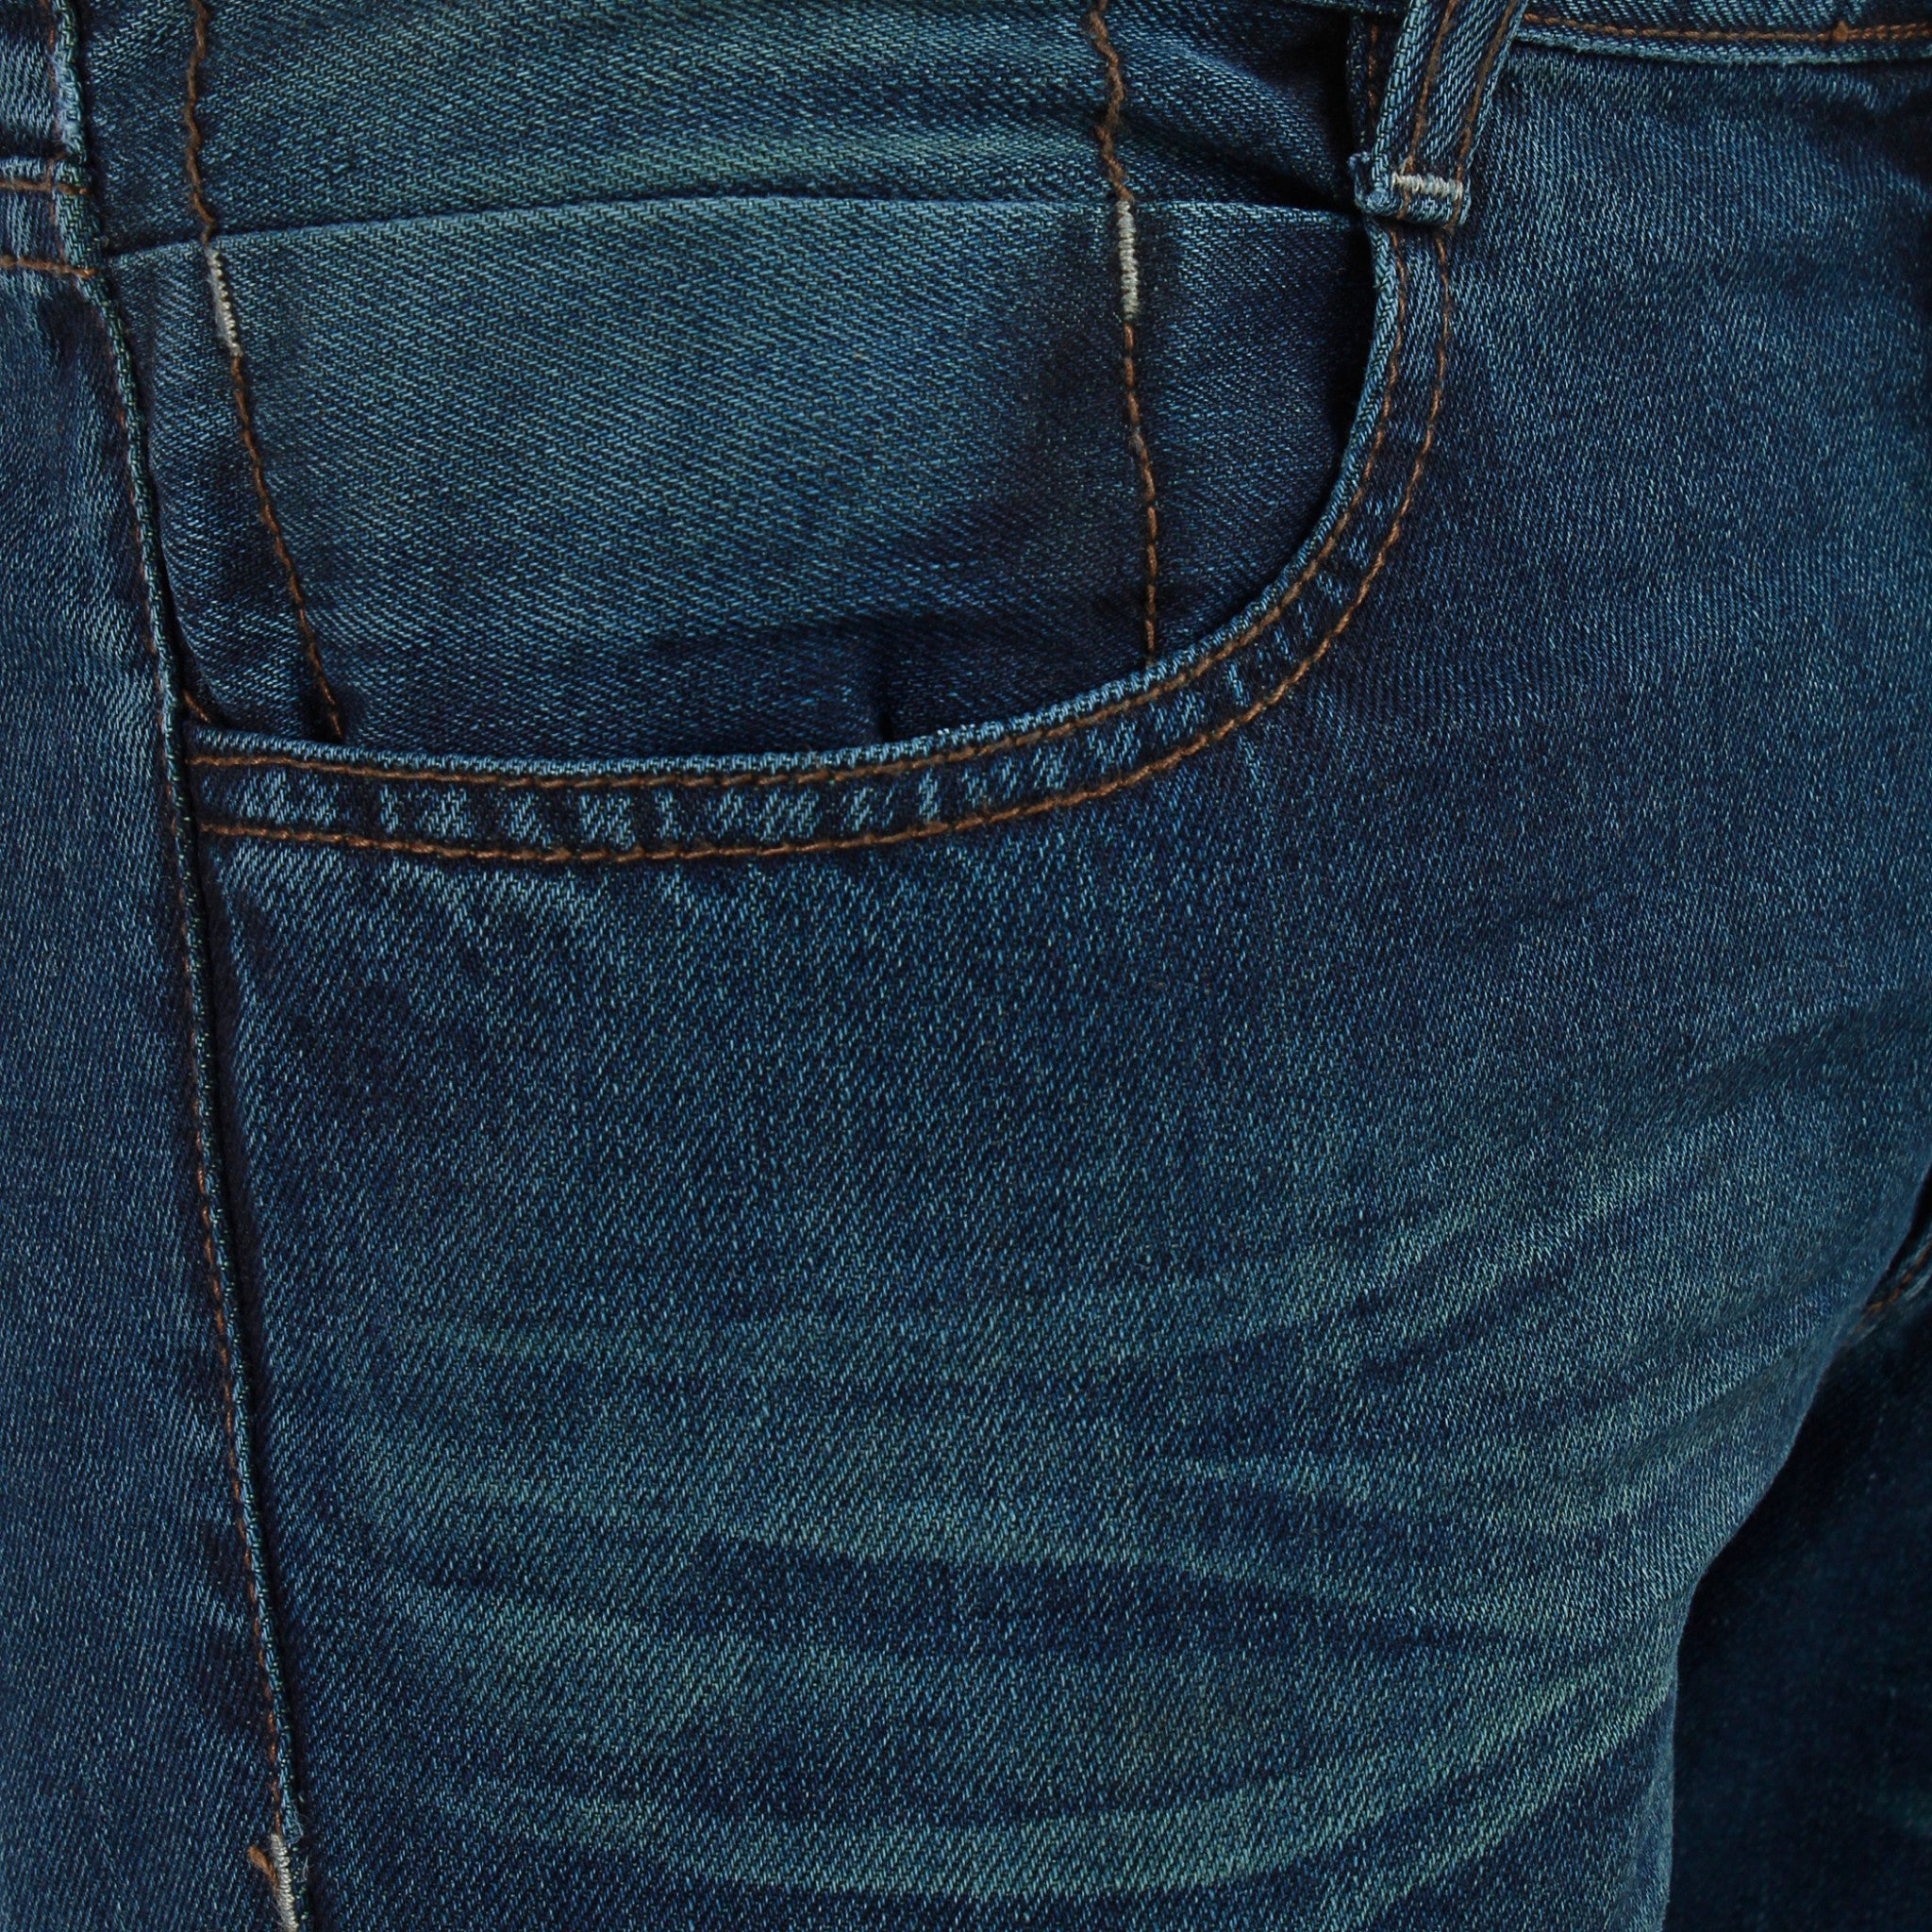 Gray Blue Fury Denim close up view of front pocket